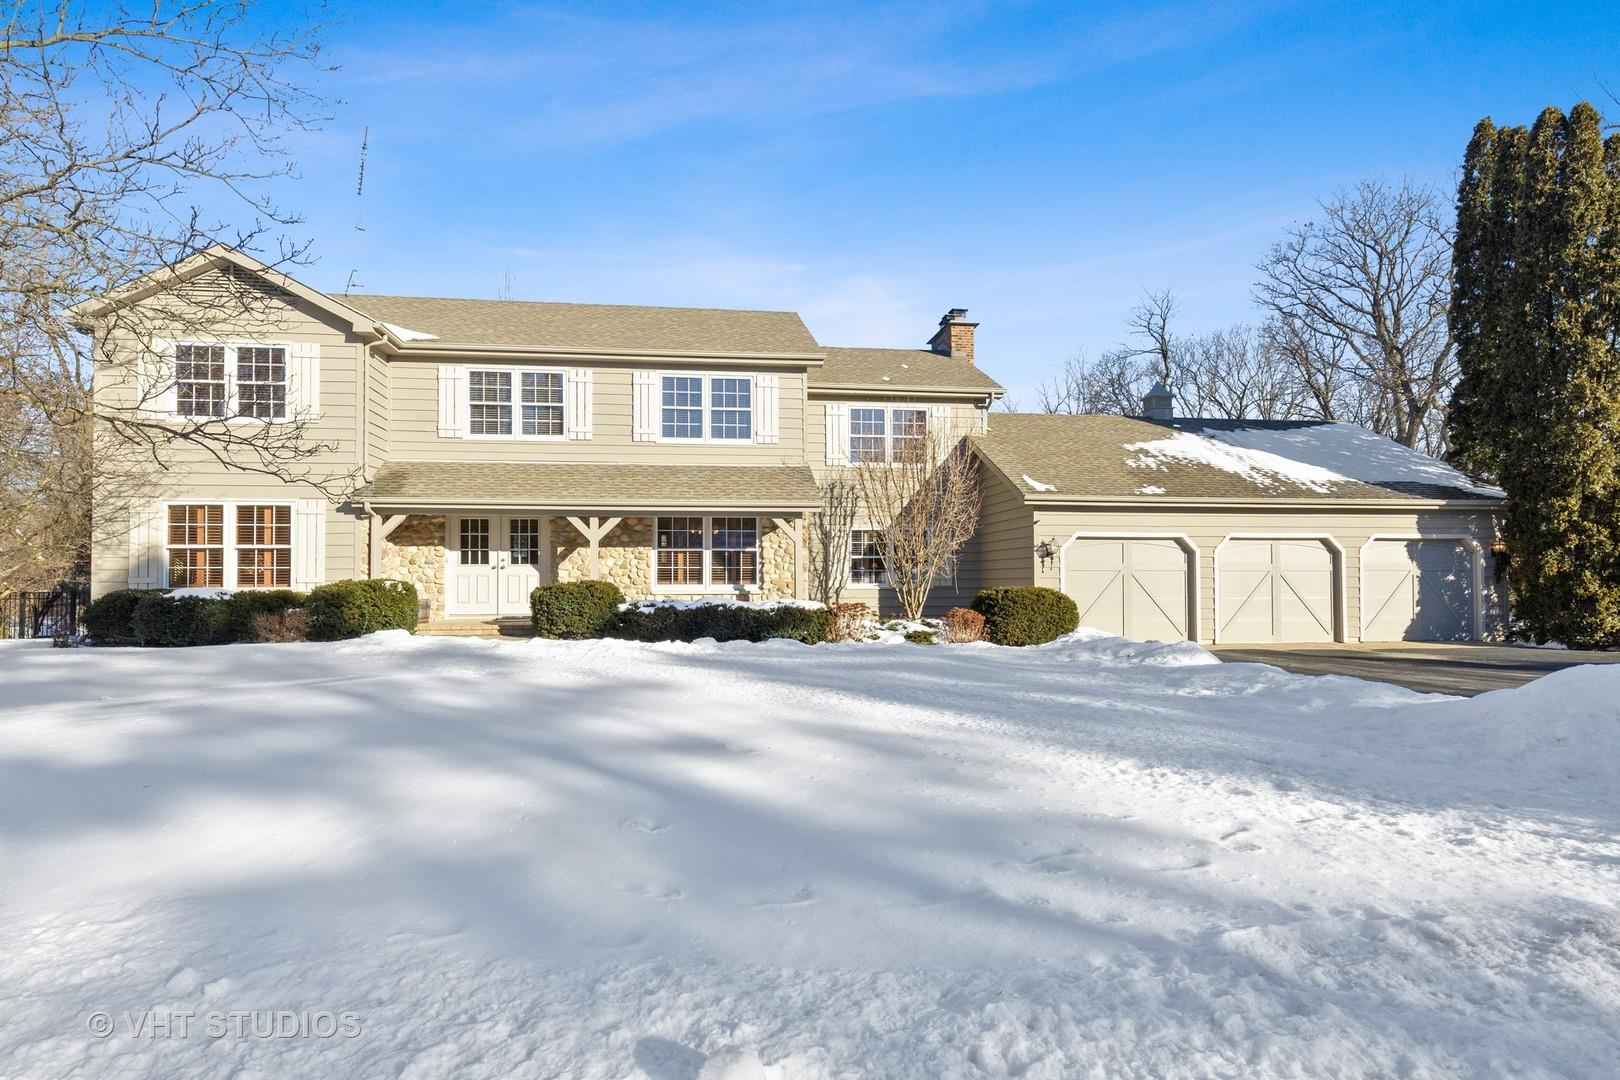 6916 Lexington Trail, Crystal Lake, IL 60012 - #: 10987342